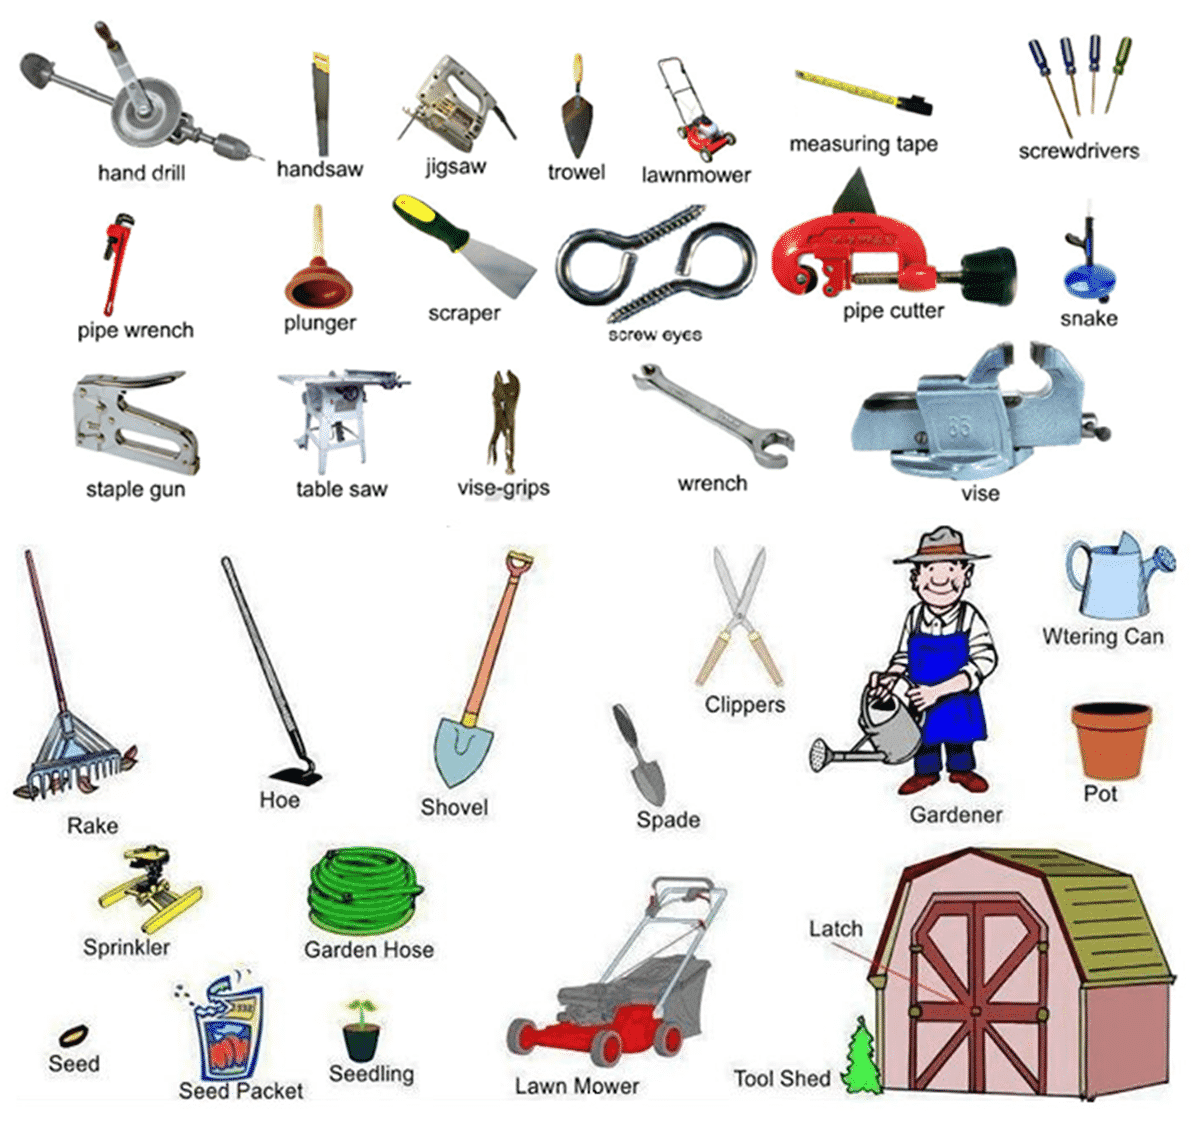 Tools, Equipment, Devices and Home Appliances Vocabulary: 300+ Items Illustrated 14